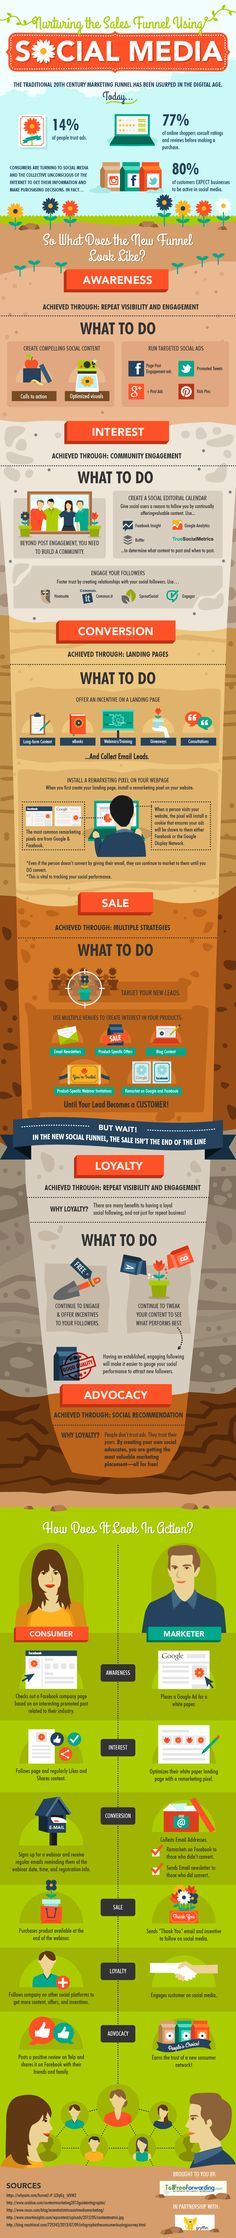 Nurturing the Sales Funnel Using #SocialMedia #infographic #Marketing #Sales #smm